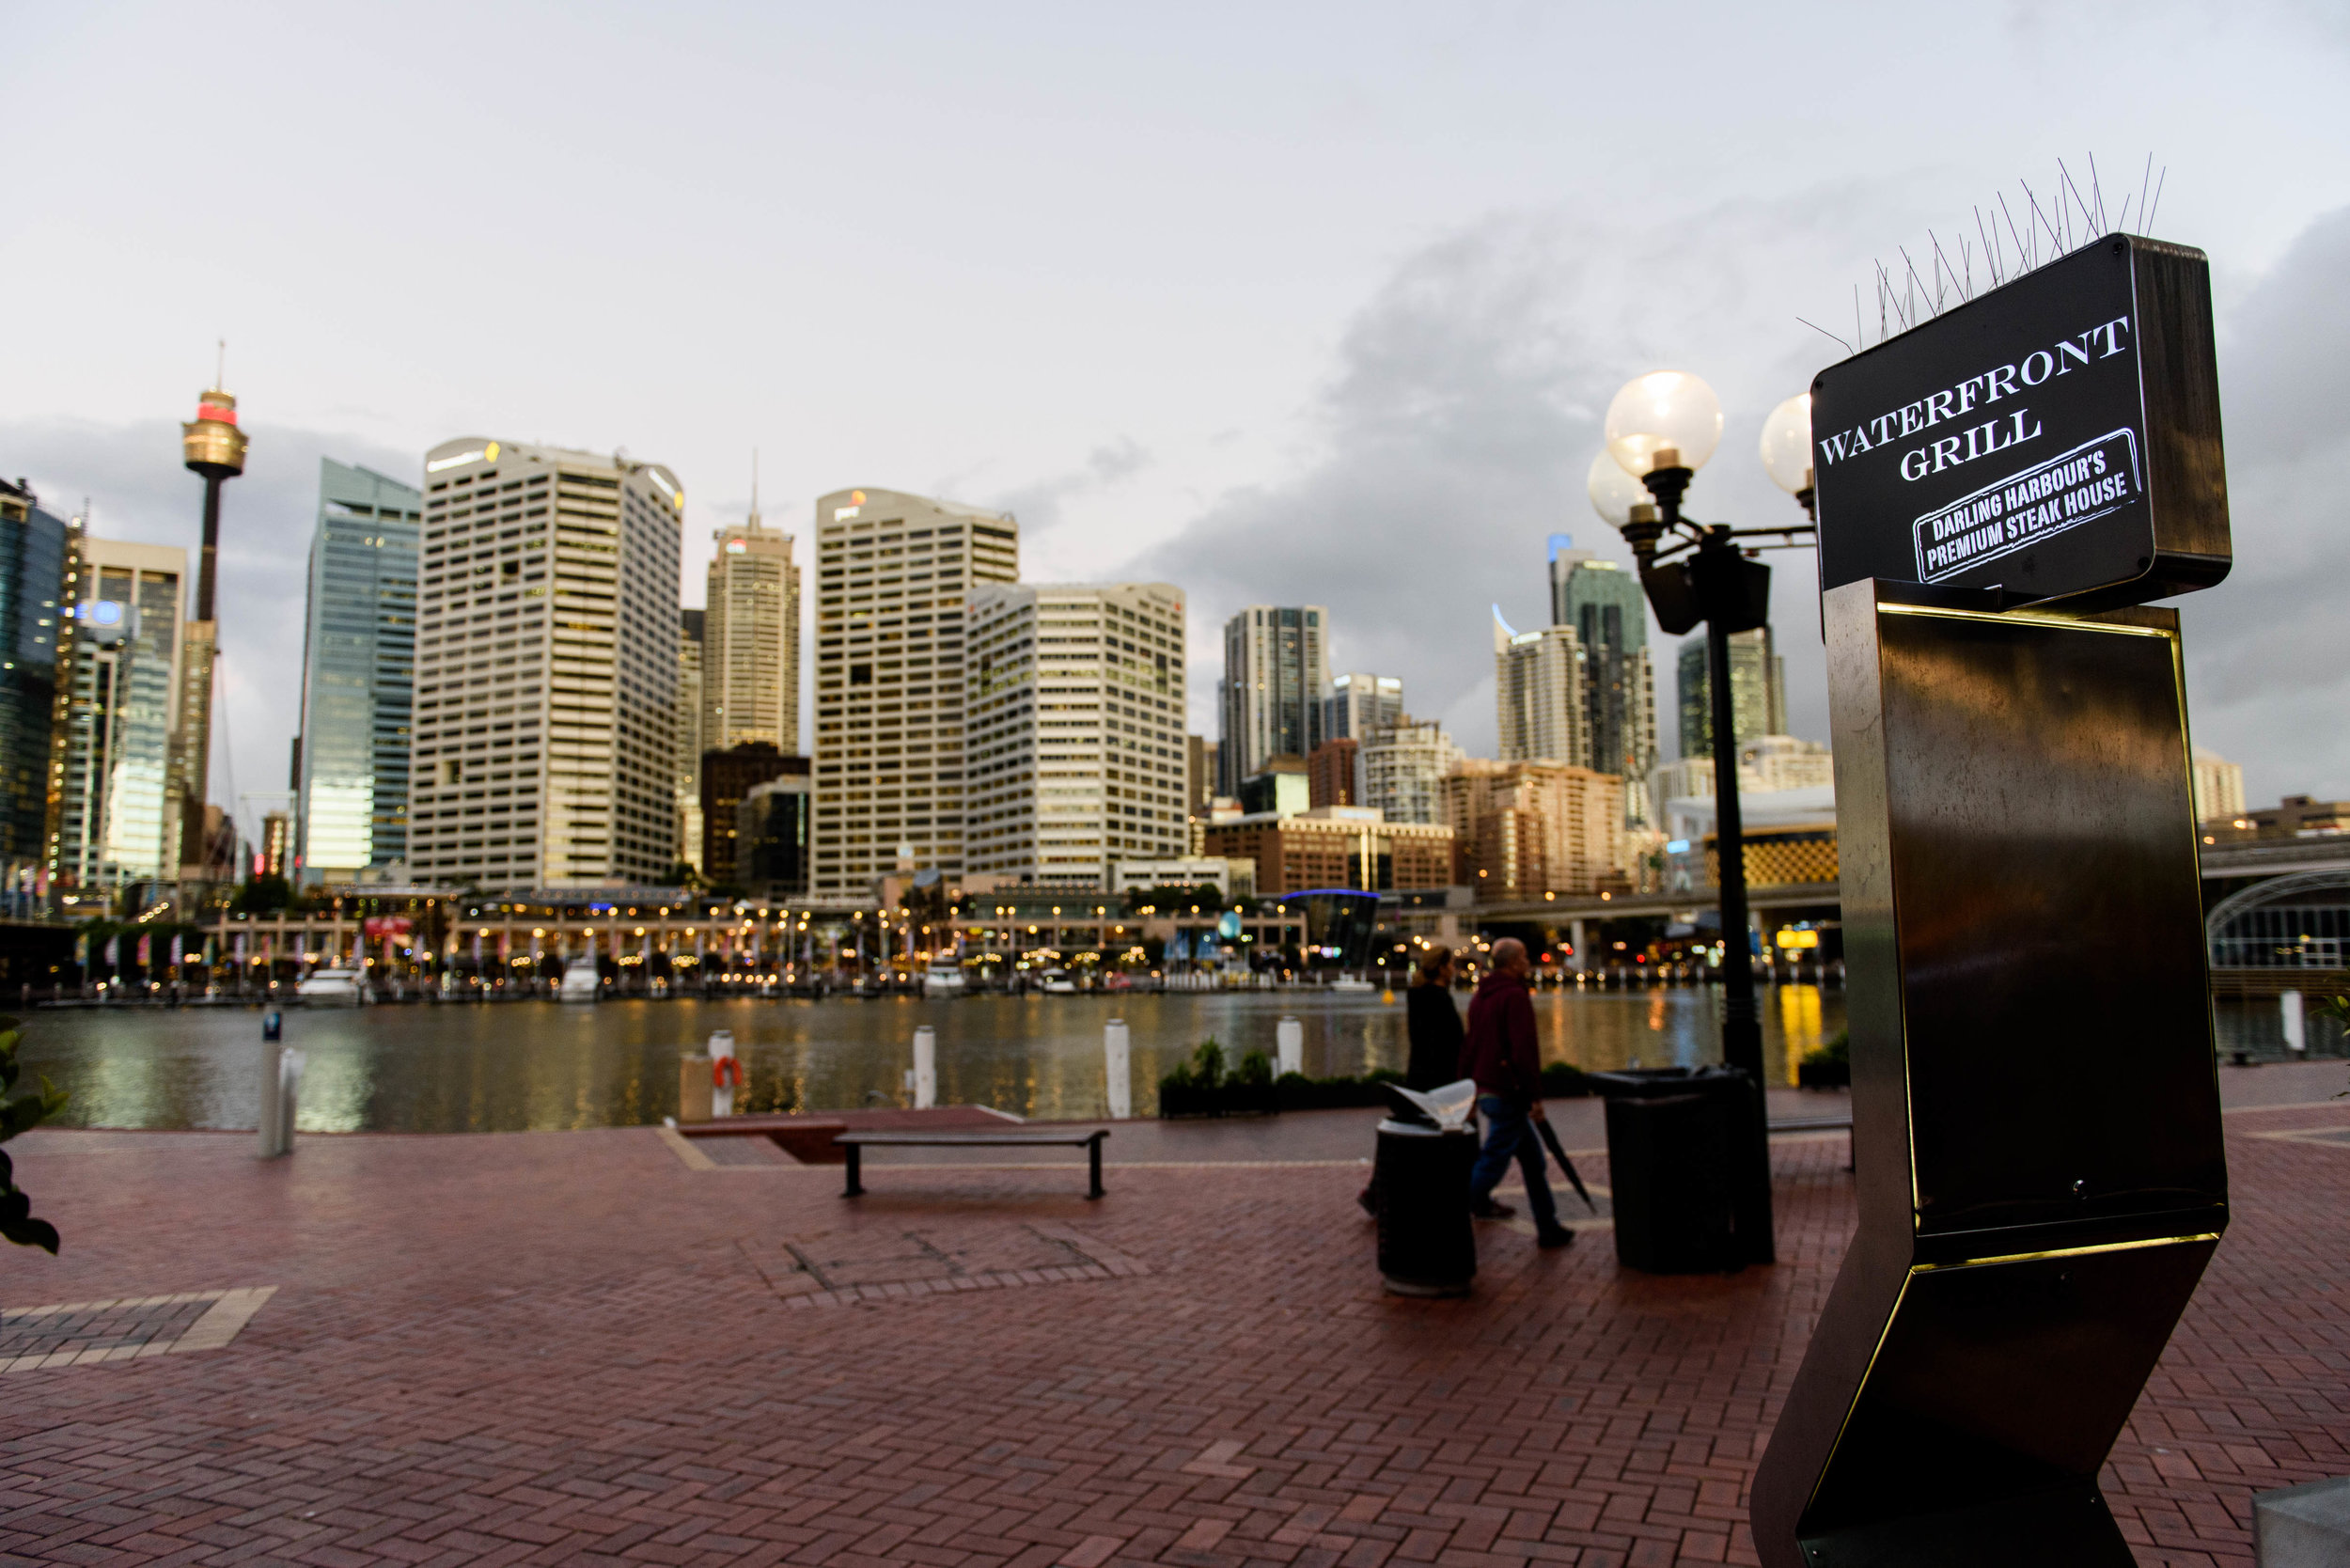 Waterfront-Grill-Gallery-5.jpg